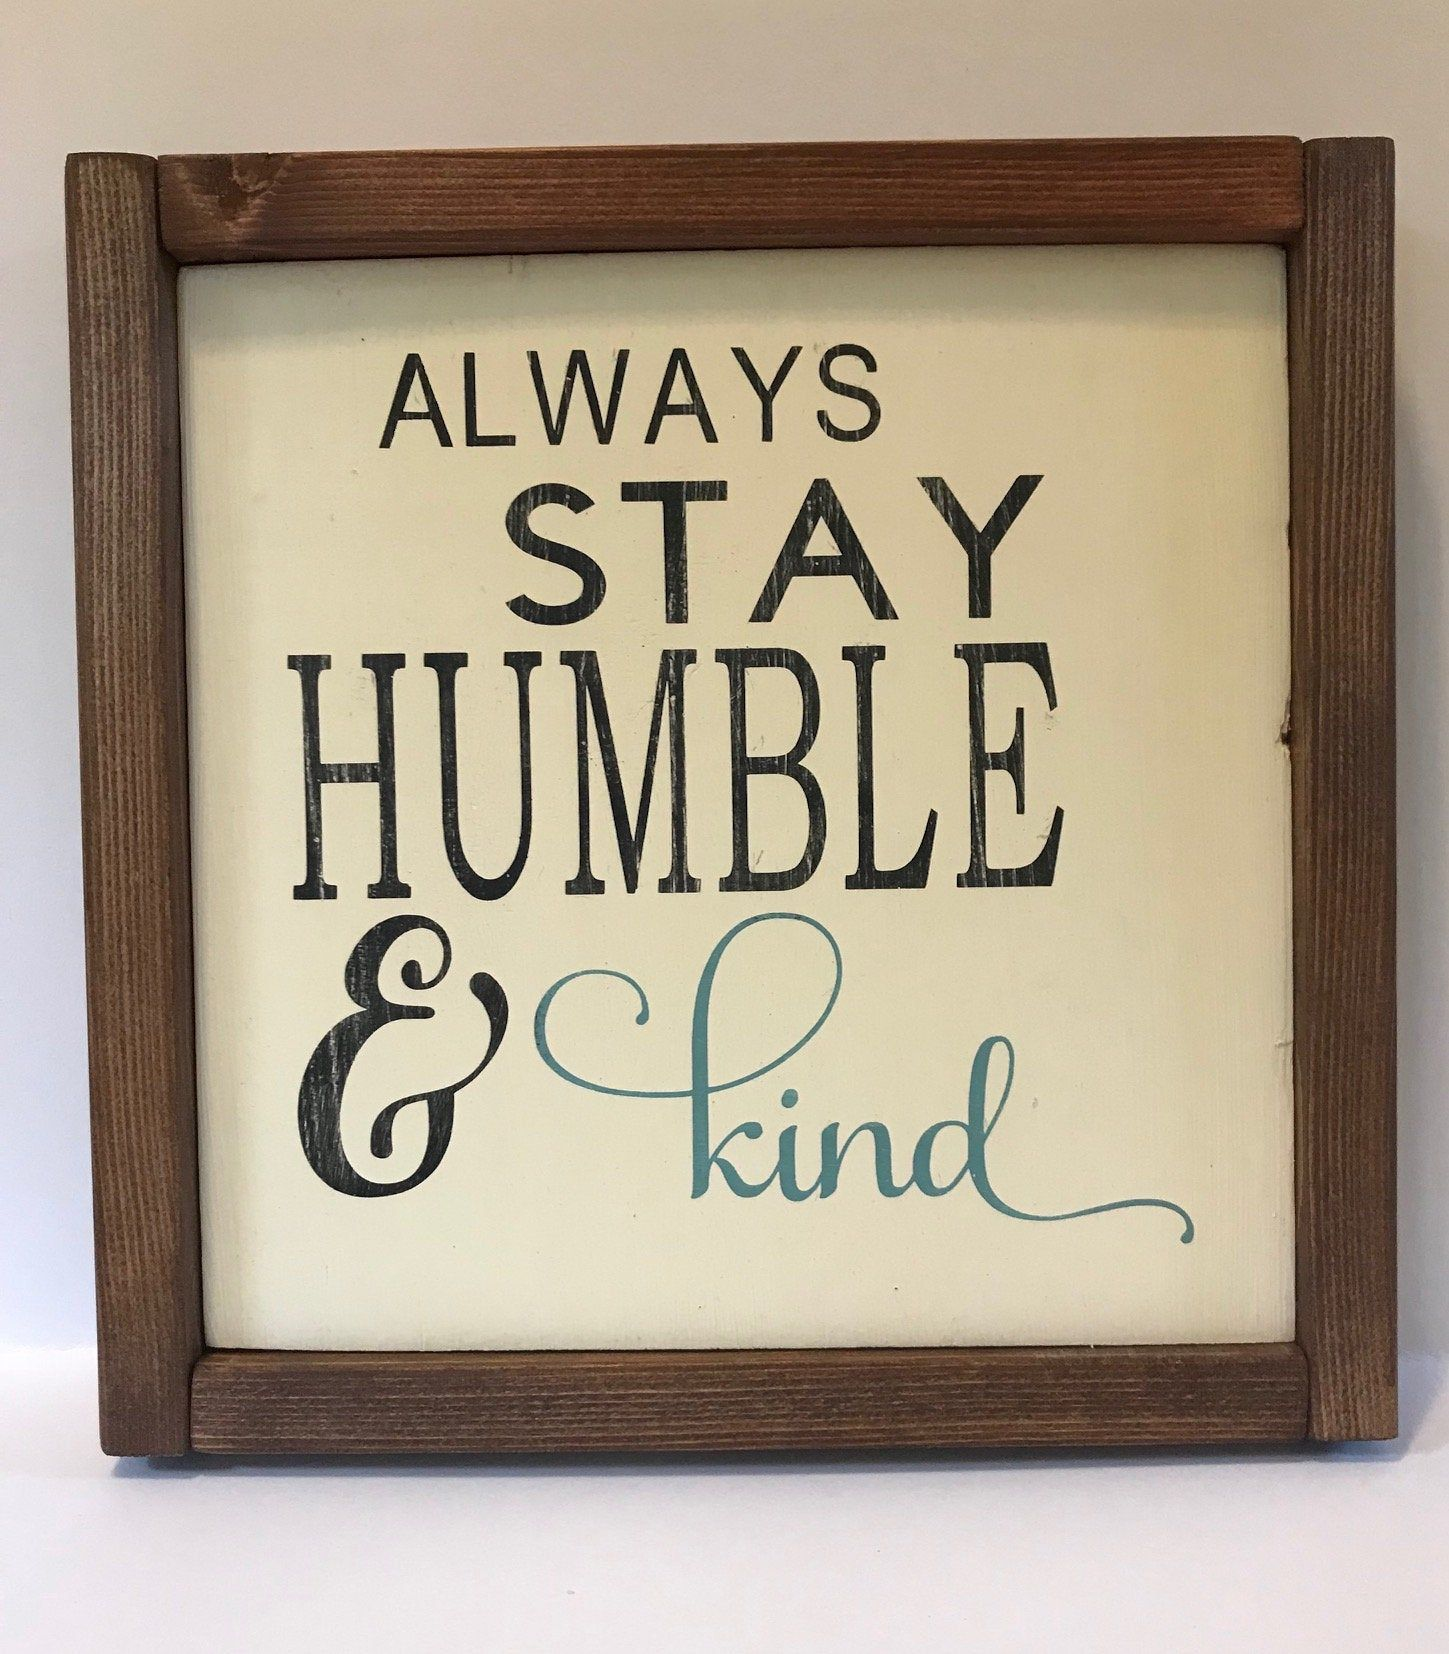 Always Stay Humble Kind Framed Wood Sign Inspirational Sign Shelf Sitter With Images Inspirational Signs Wood Frame Sign Stay Humble